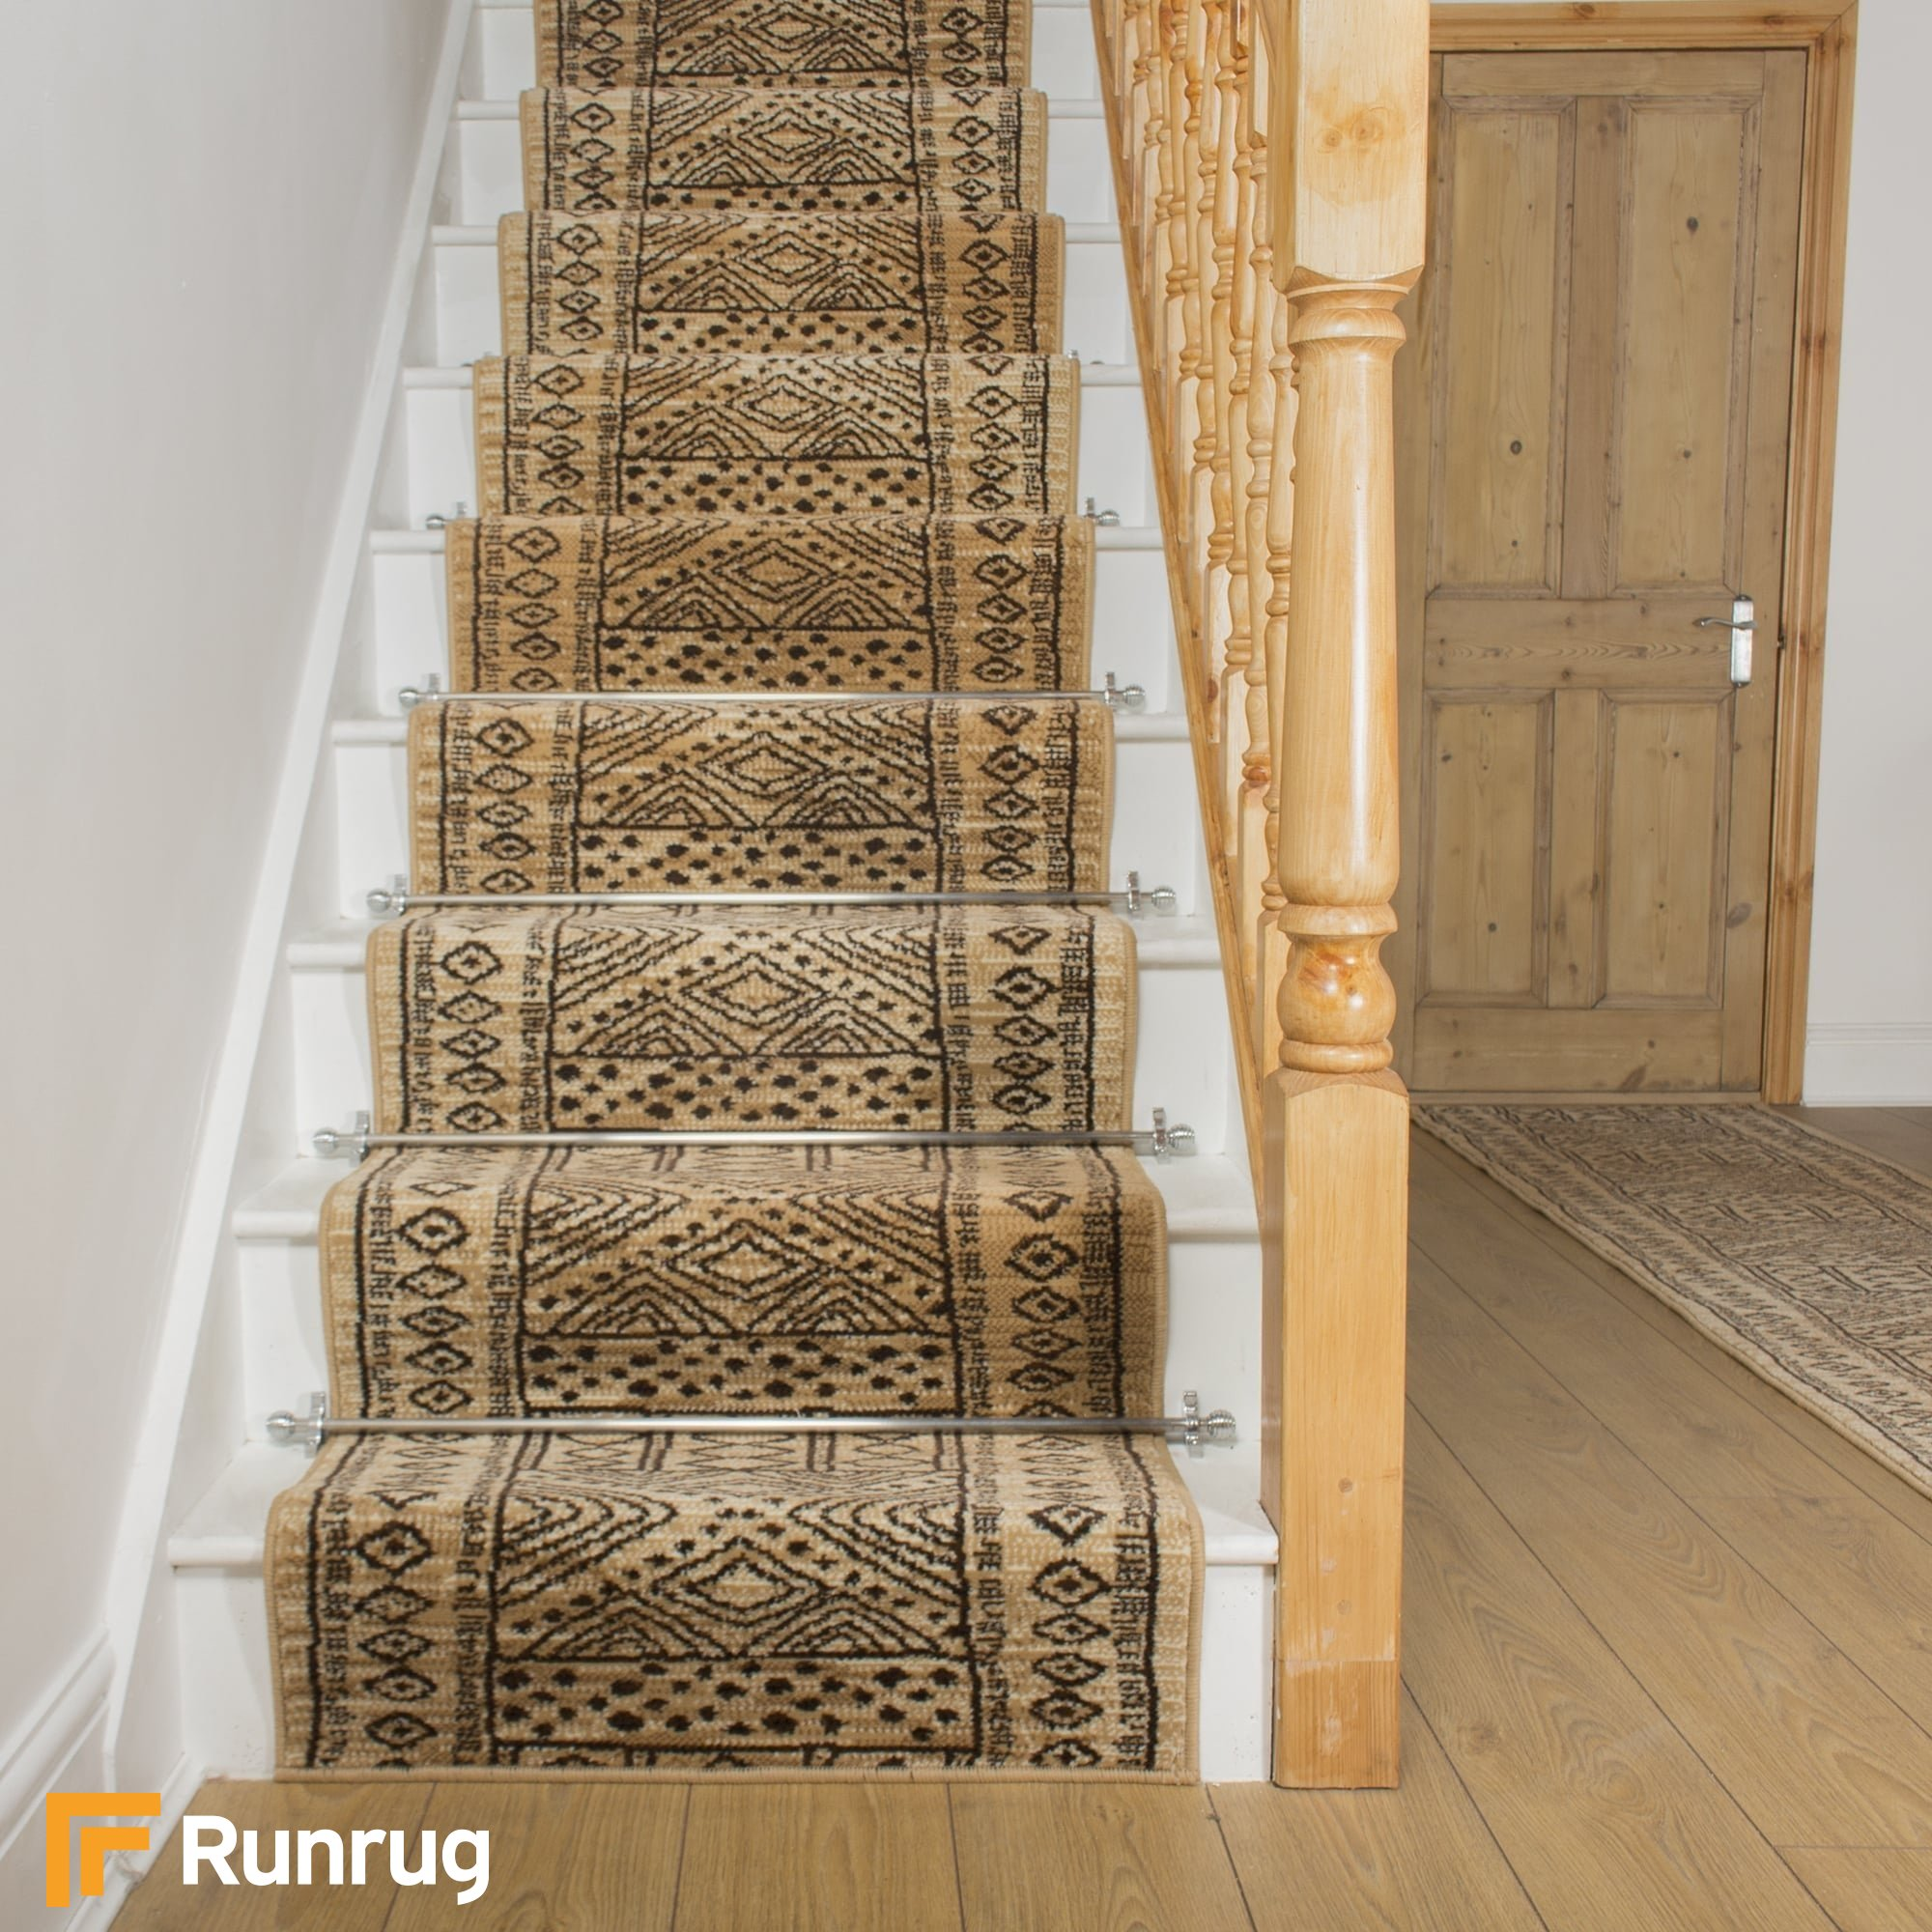 how to clean berber carpet on stairs